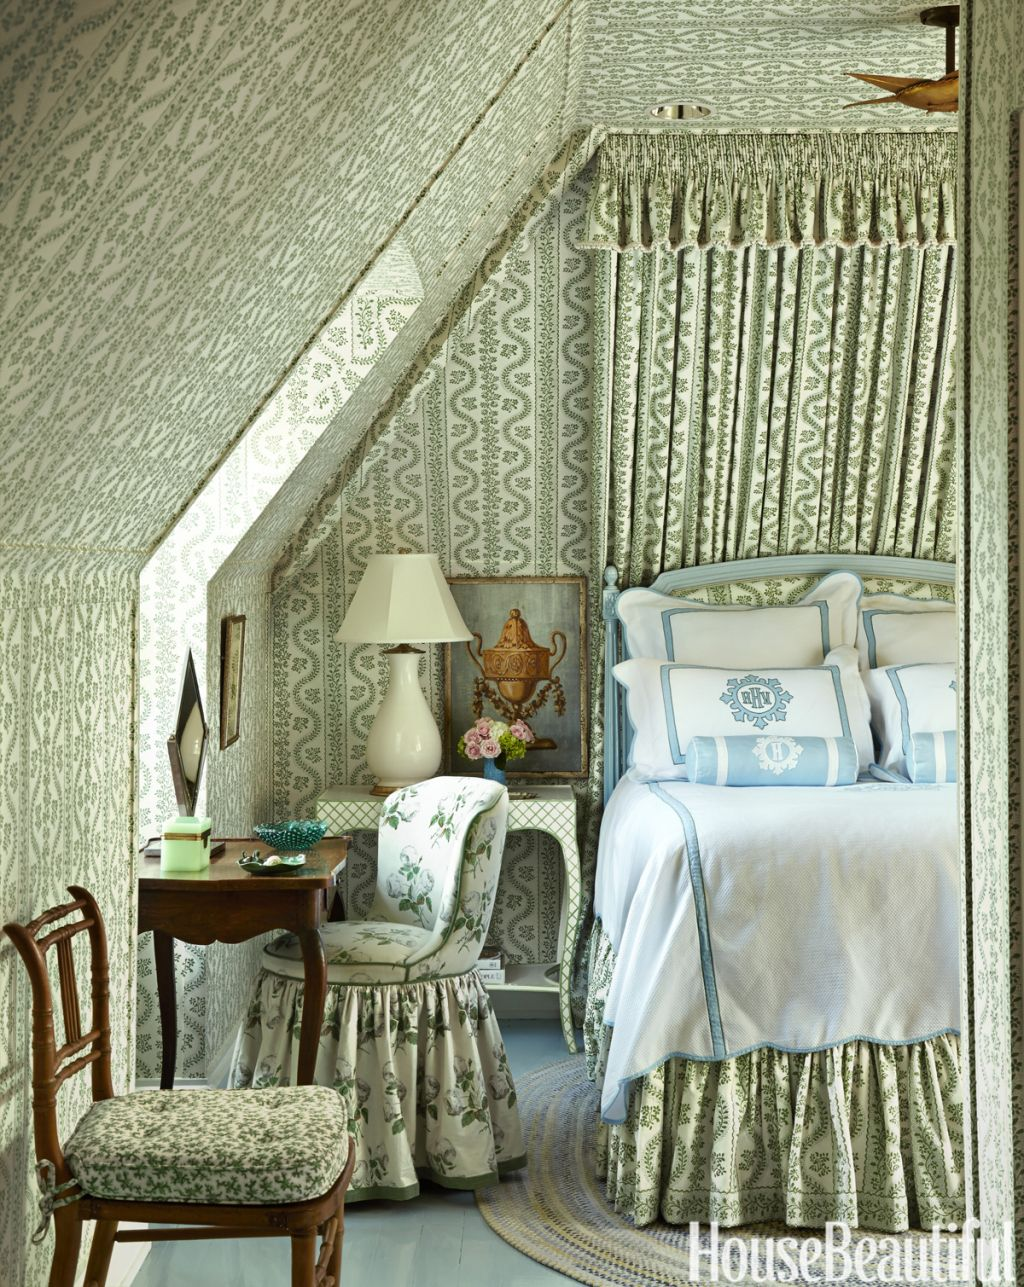 An Attic Guest Room Is Kincaidu0027s Homage To Legendary Designer Sister  Parish, Whose Classic Dolly